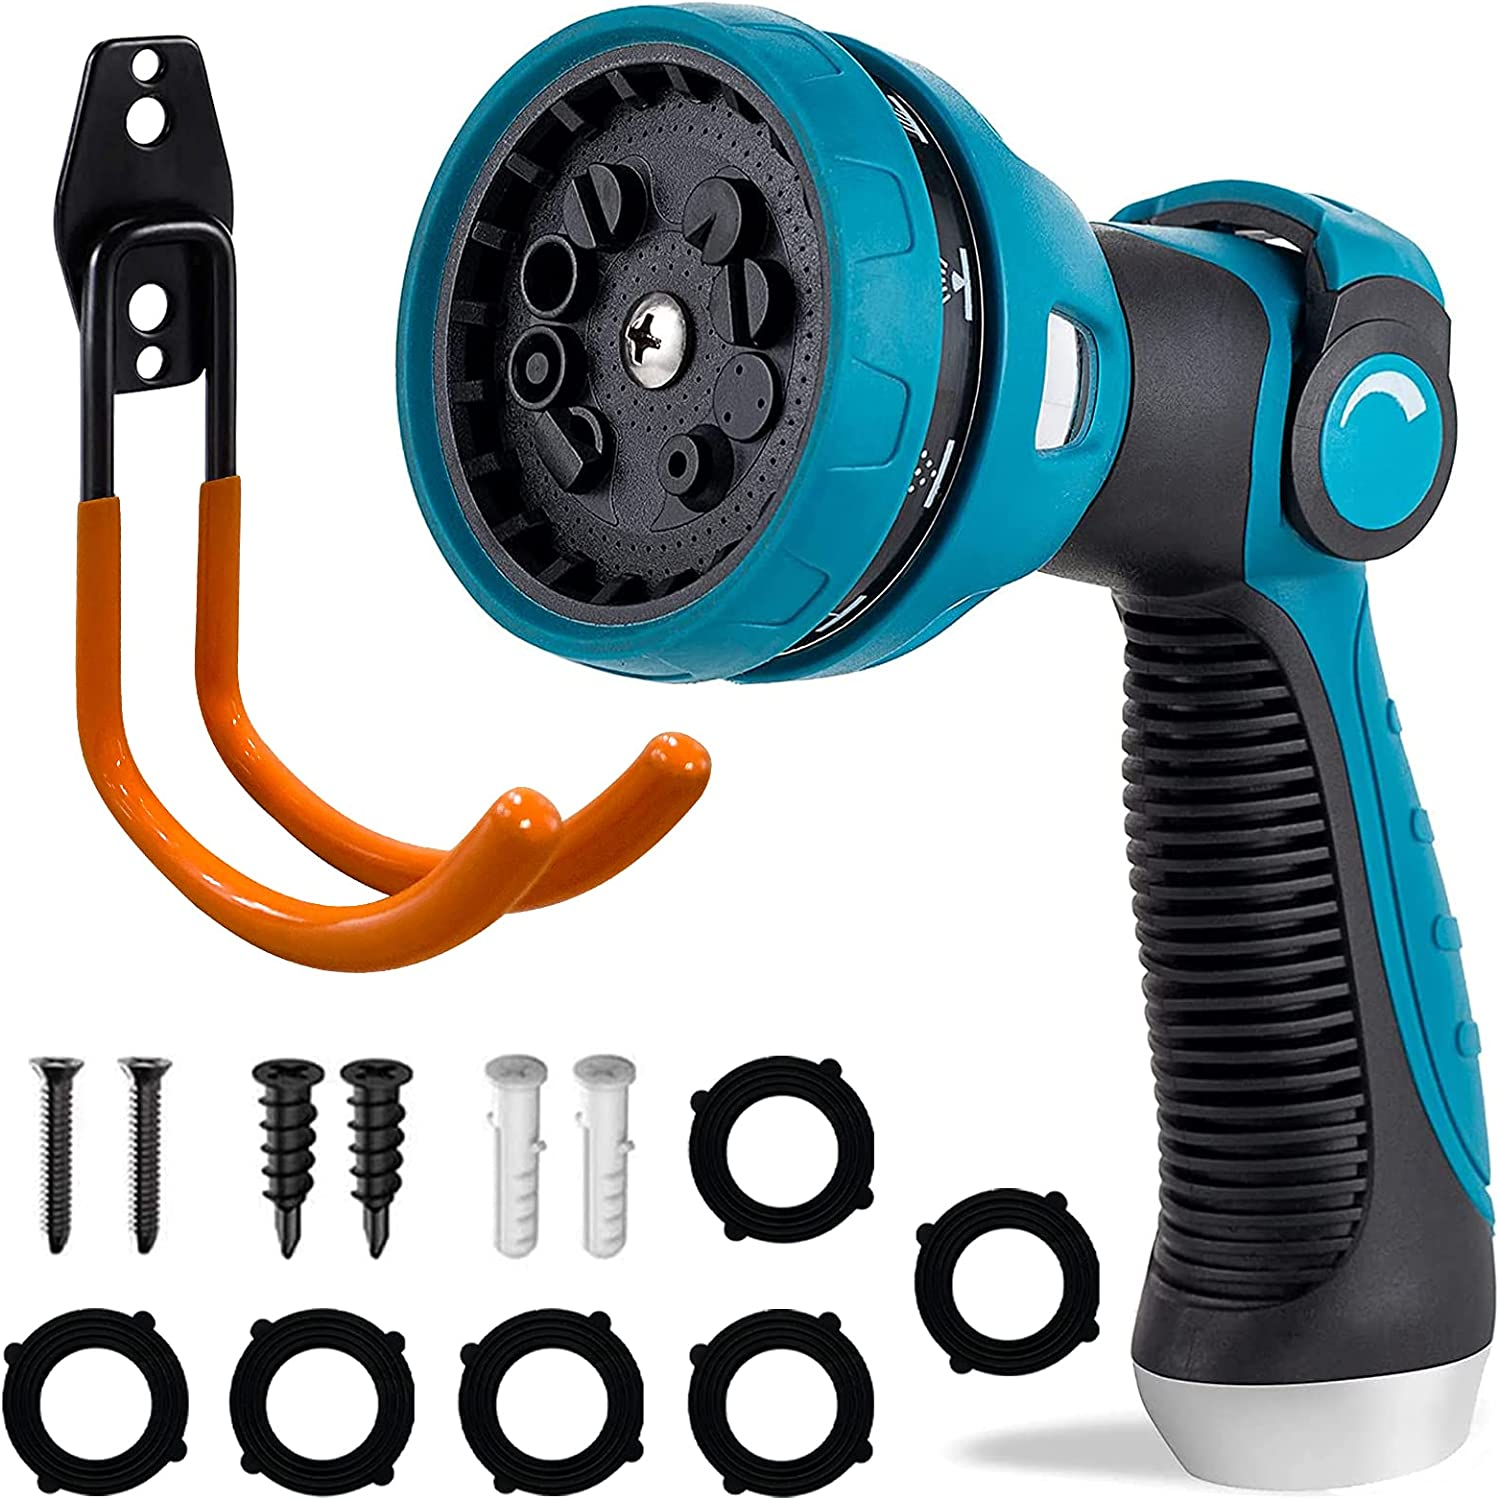 Garden Hose Nozzle - Sprayer Holder Max Selling and selling 47% OFF Water with